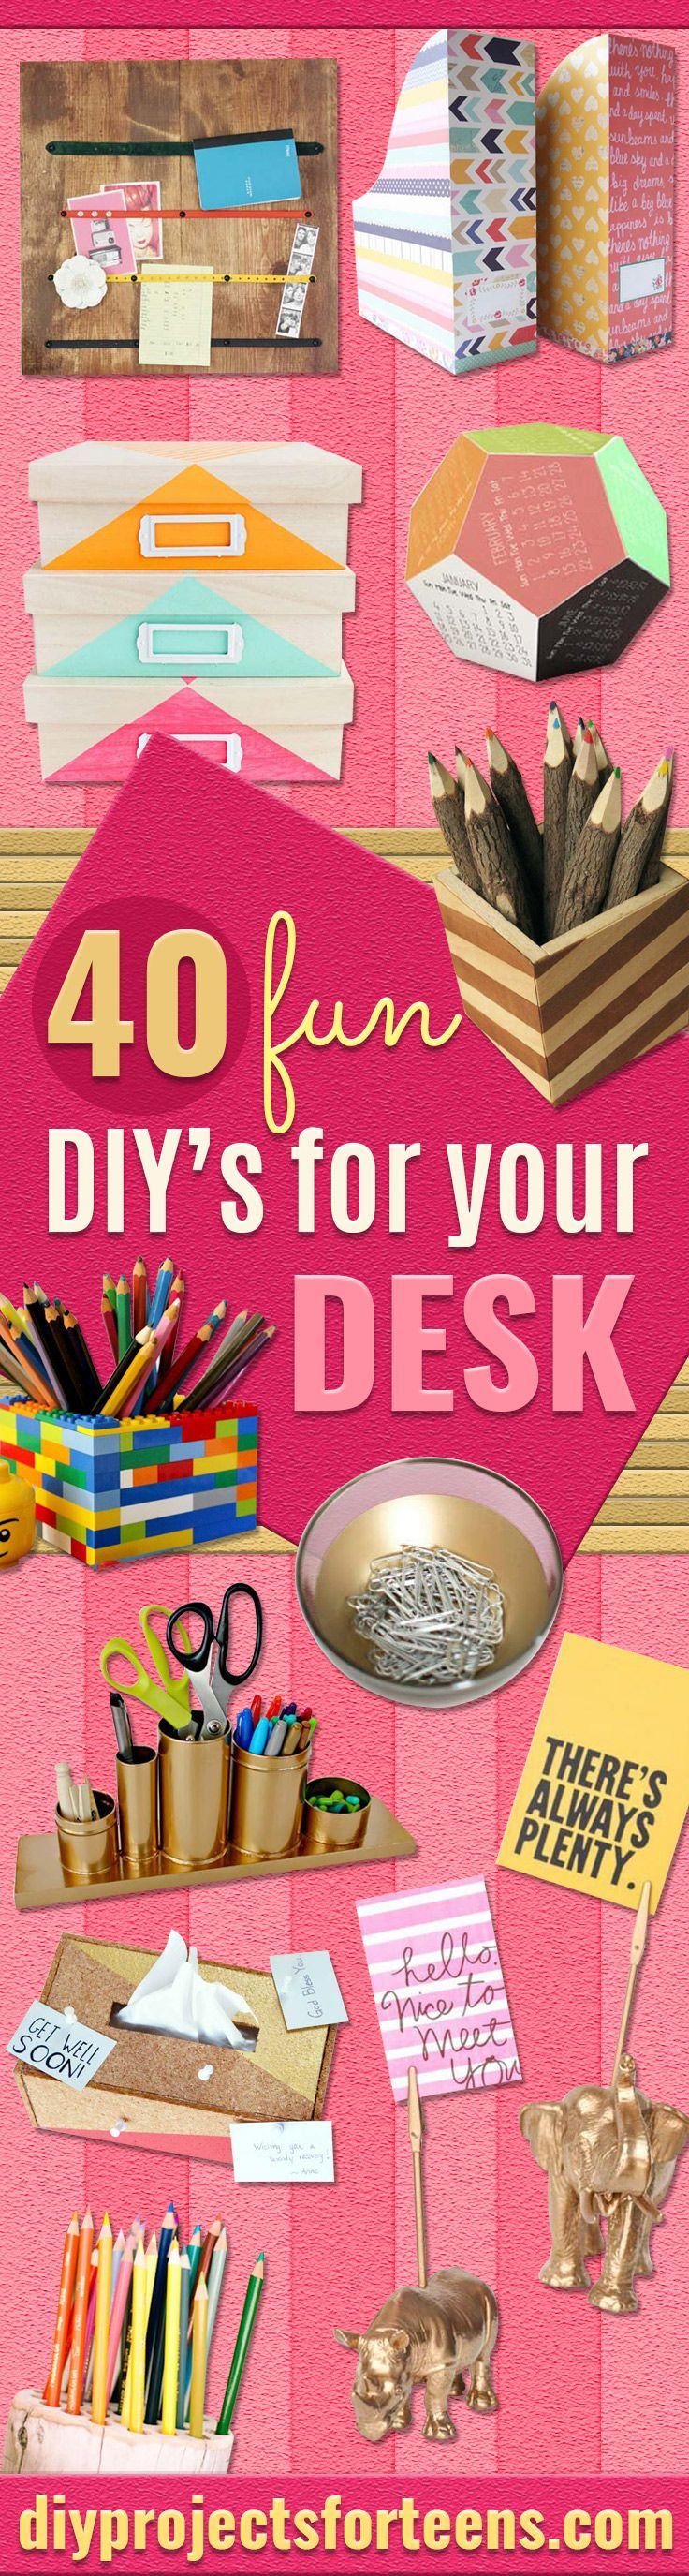 79 best diy office images on pinterest desks for the home and 40 fun diys for your desk diy solutioingenieria